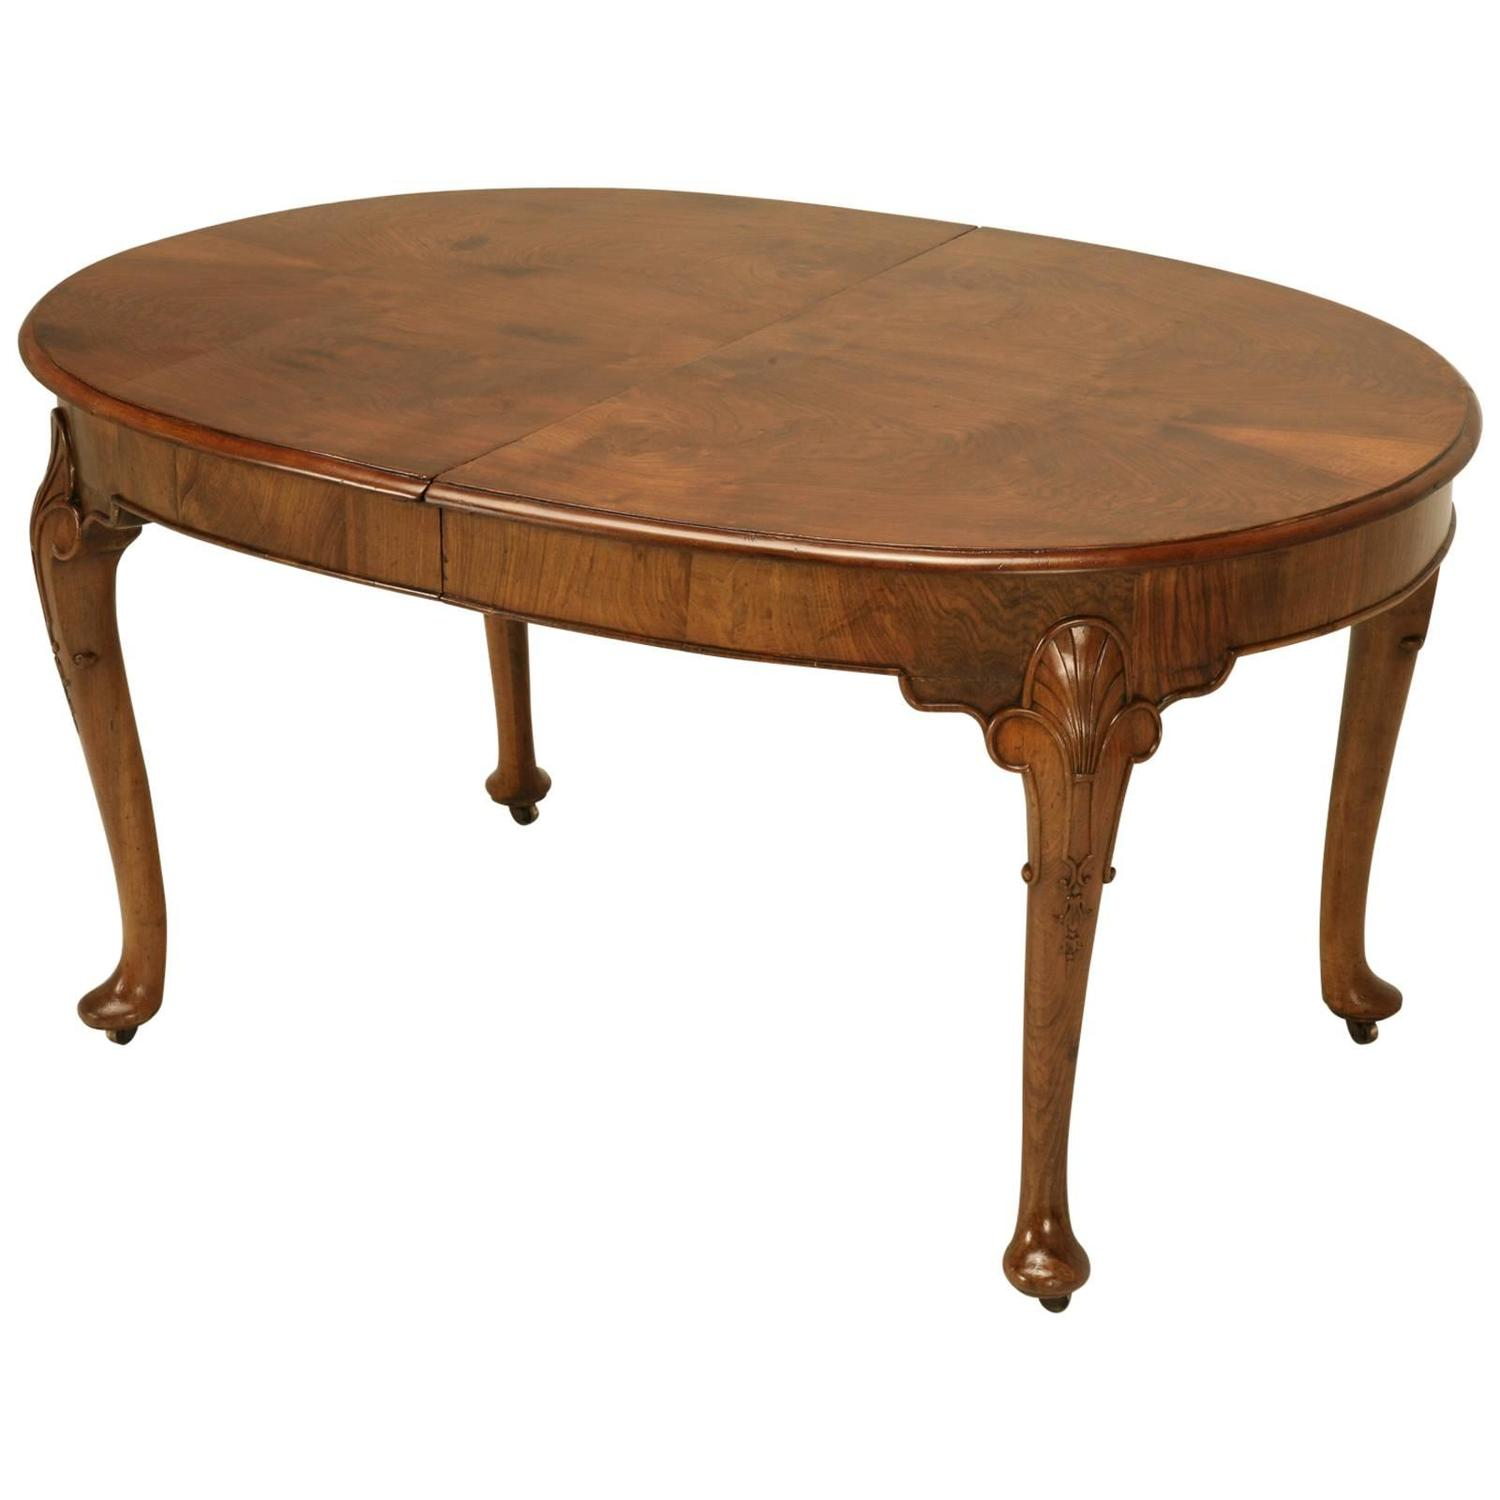 Id F 4150403 on dining room chippendale furniture